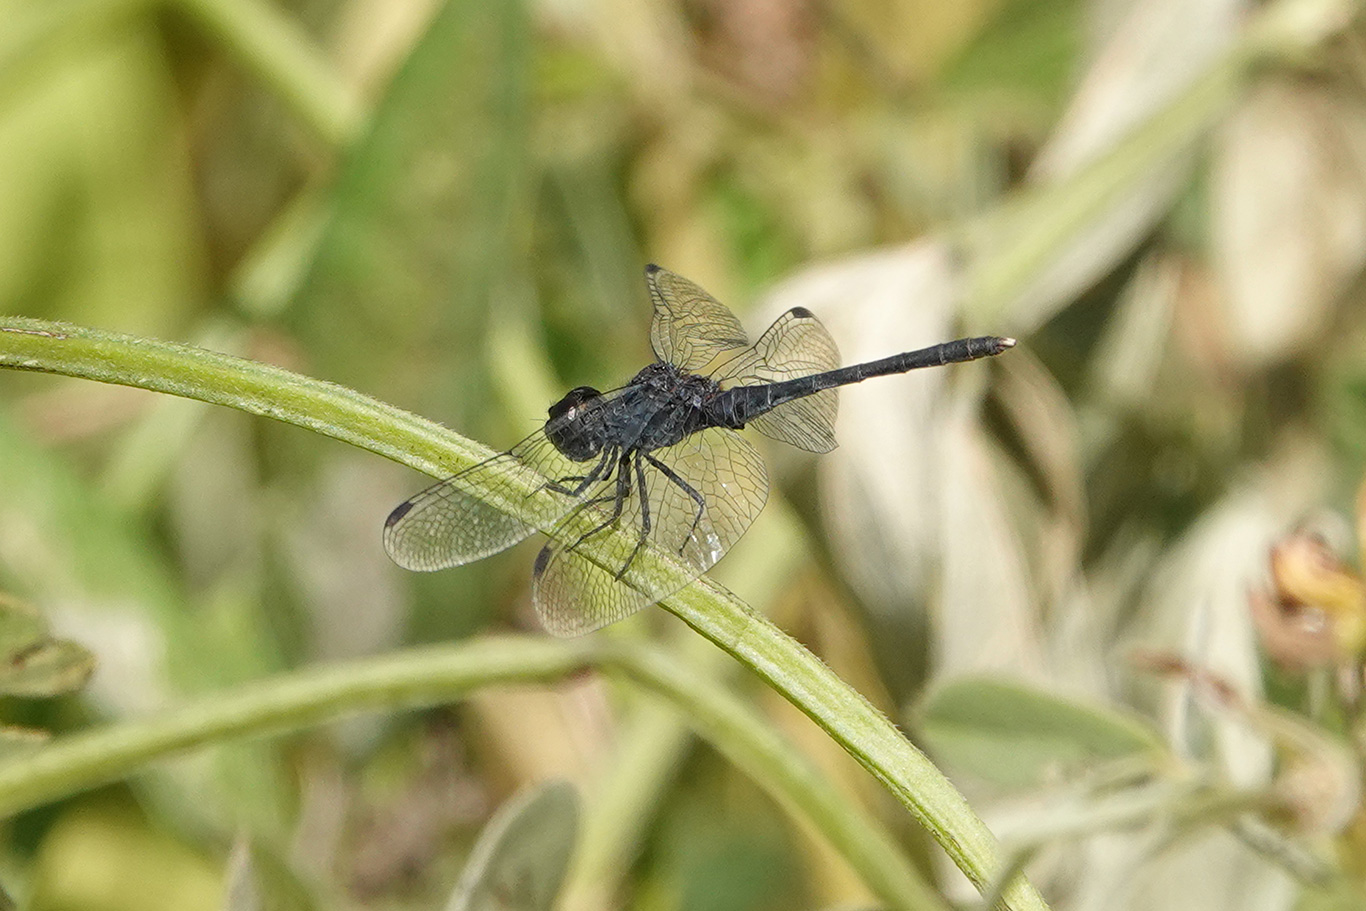 Black Percher Dragonfly, Jakhaly, The Gambia.